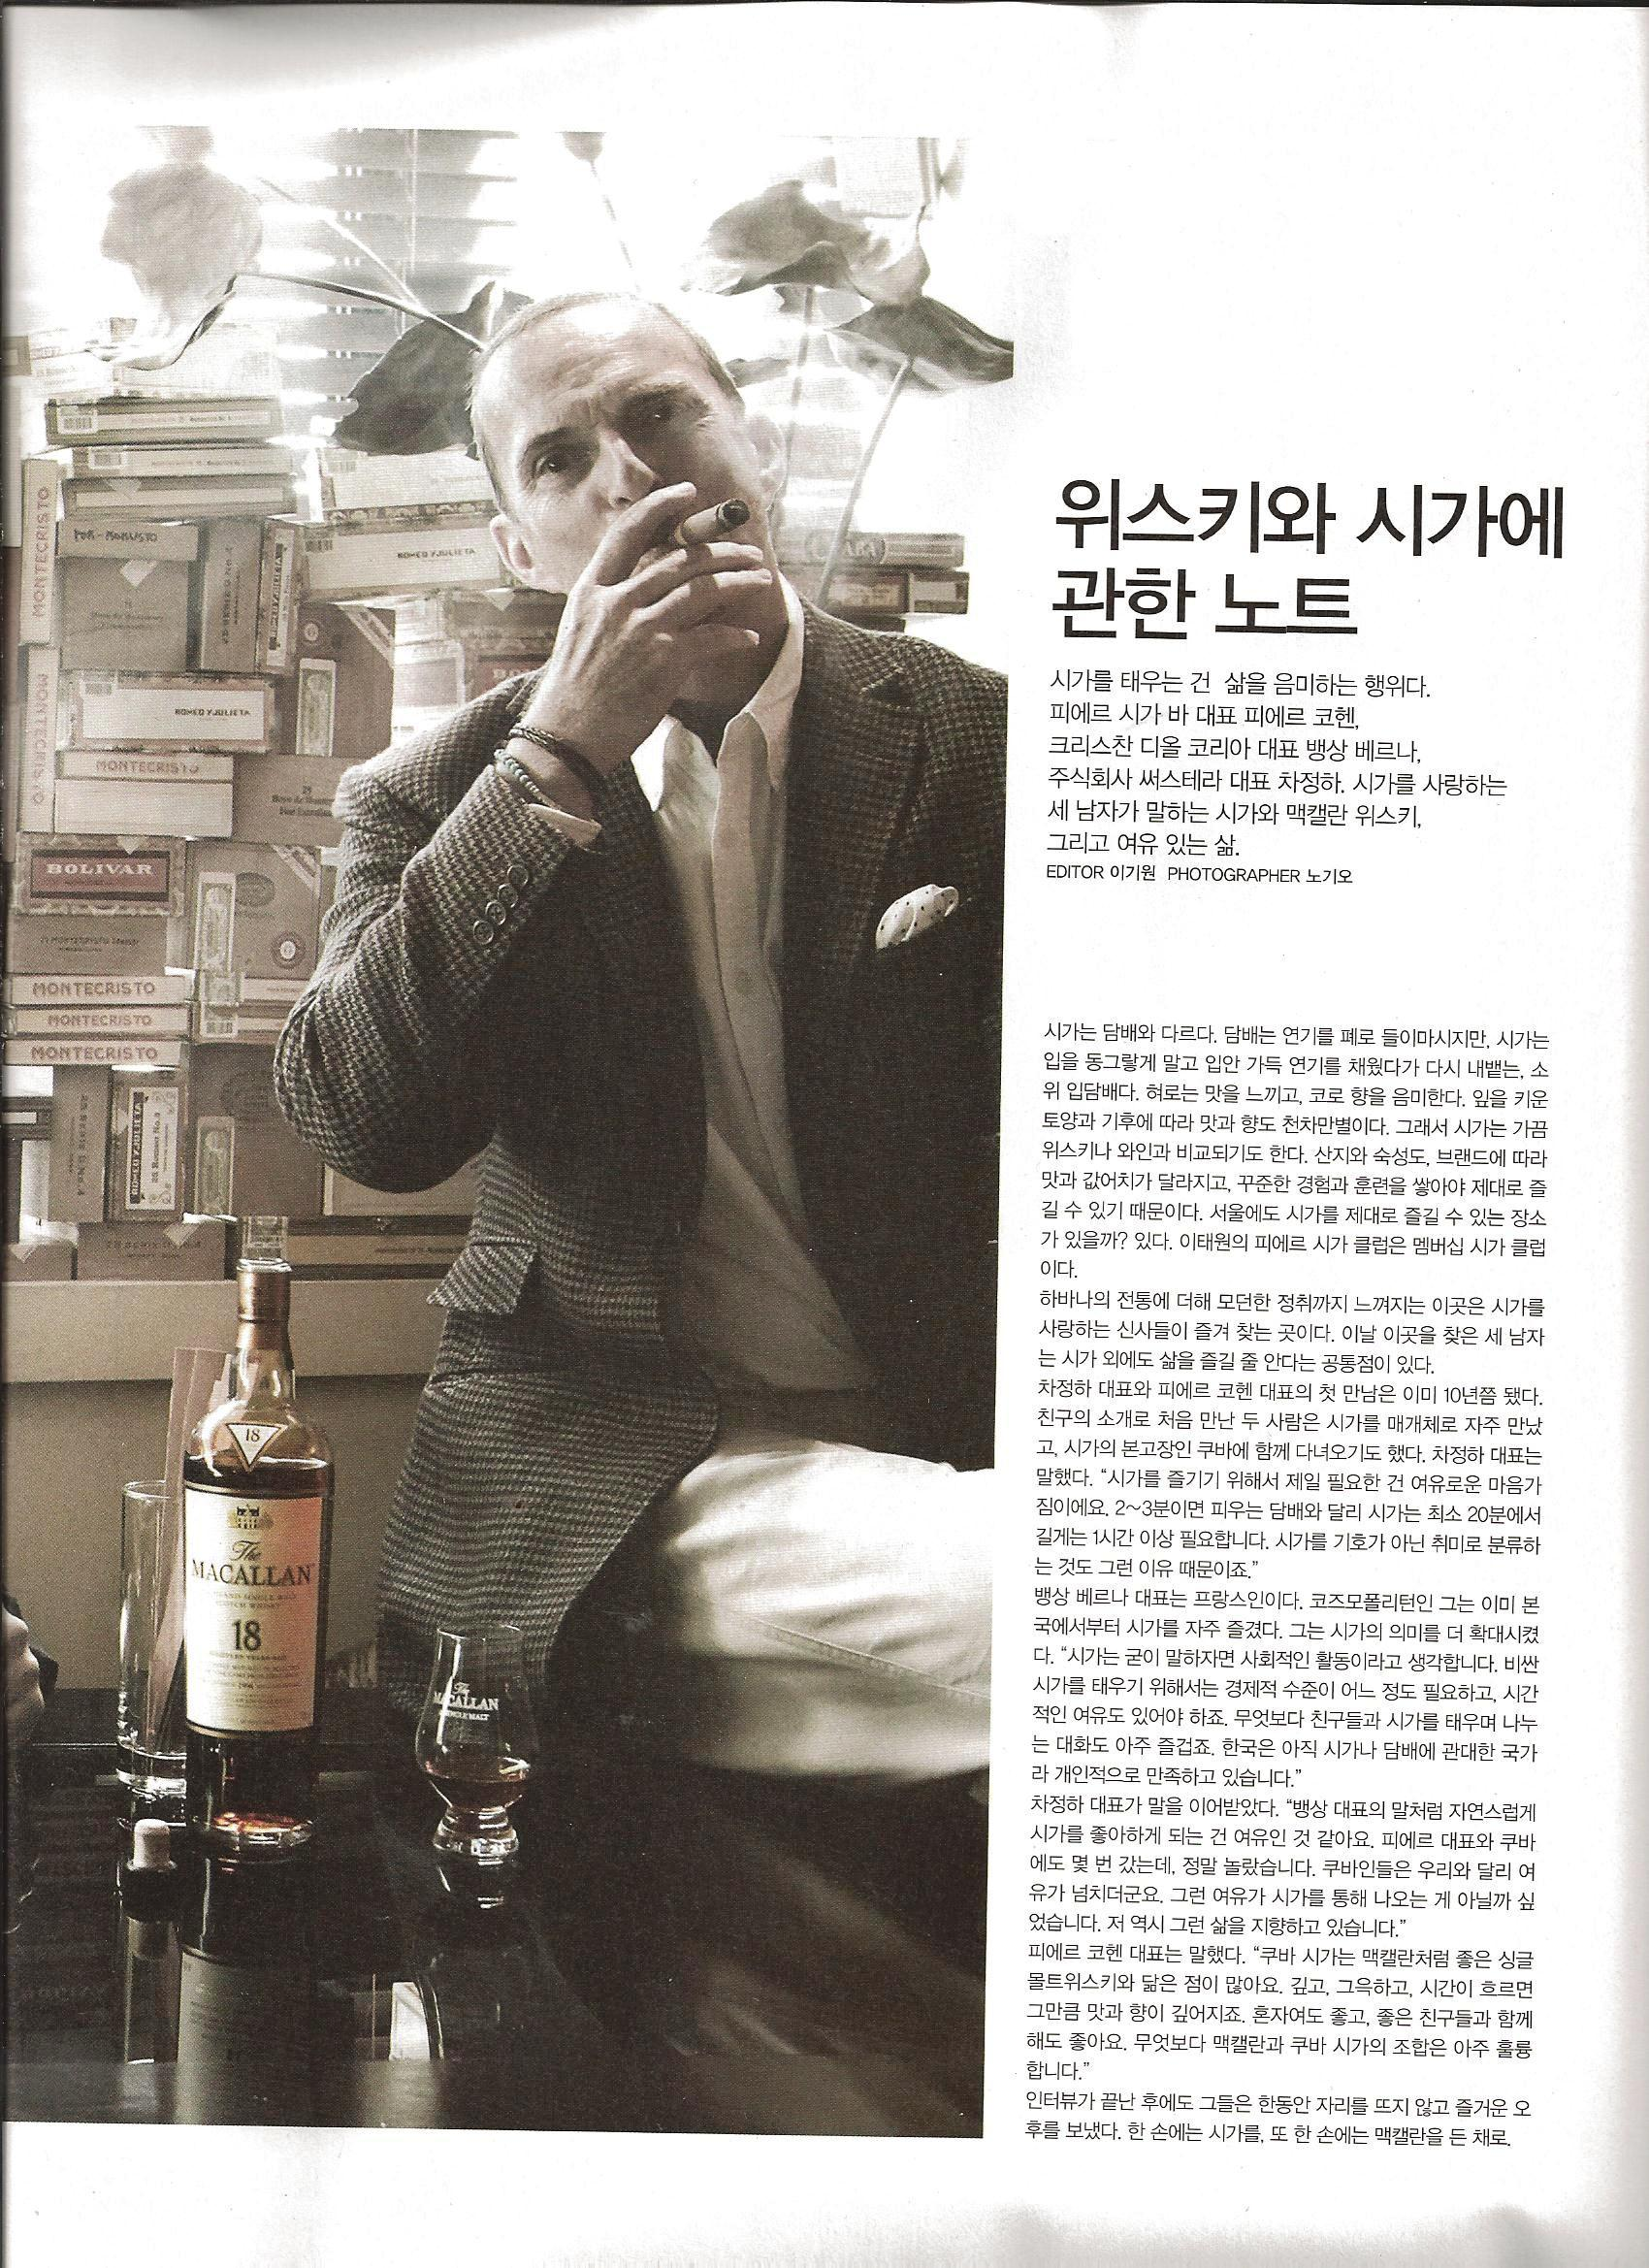 2012-11 Gentleman article 2.jpg